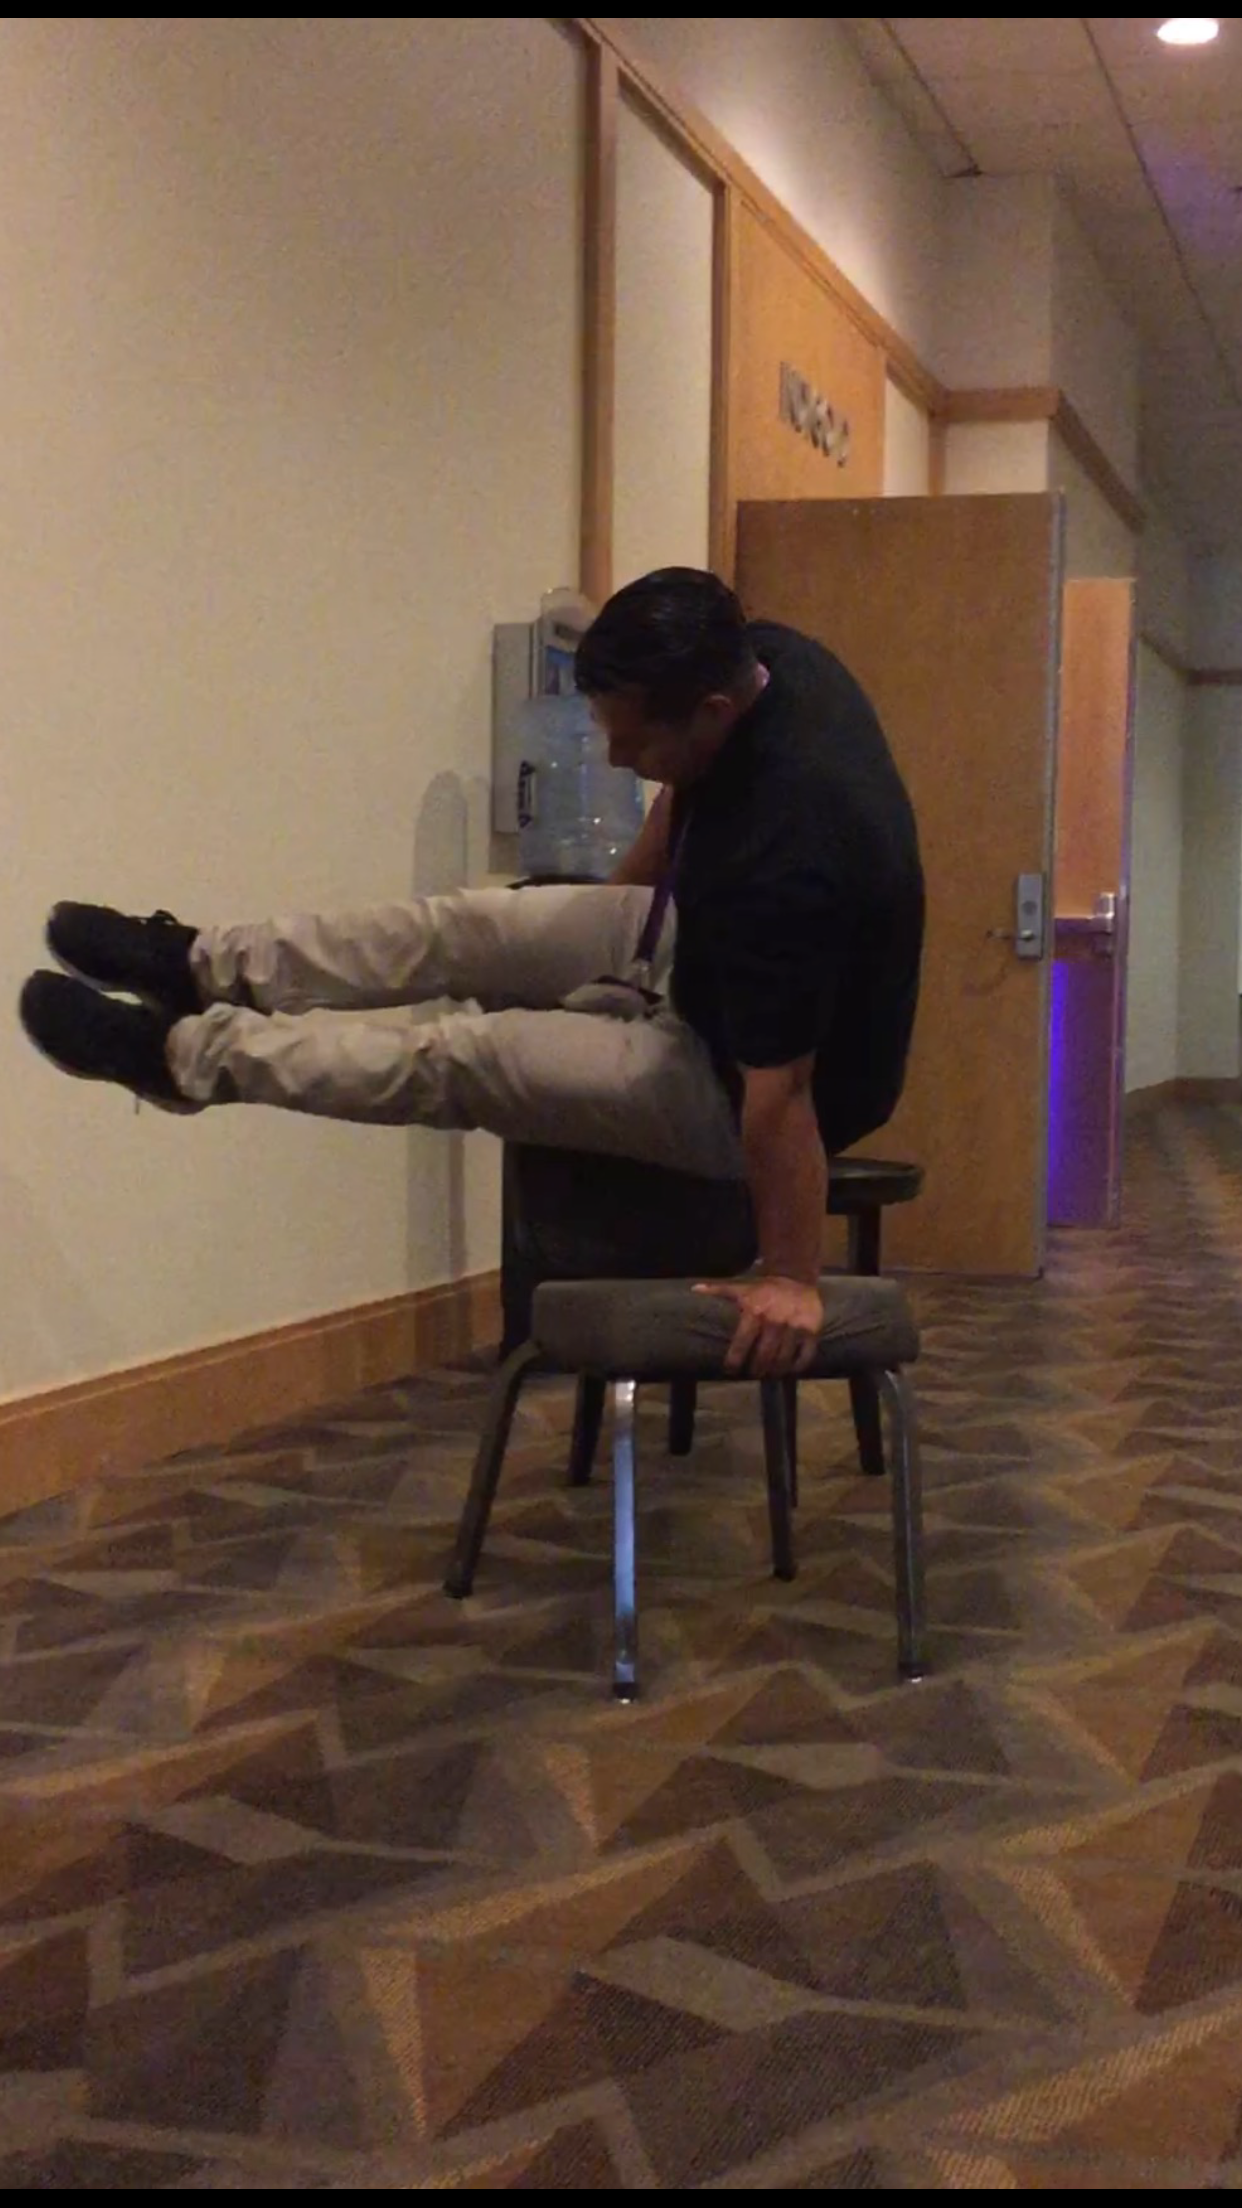 L- Sit on Chair